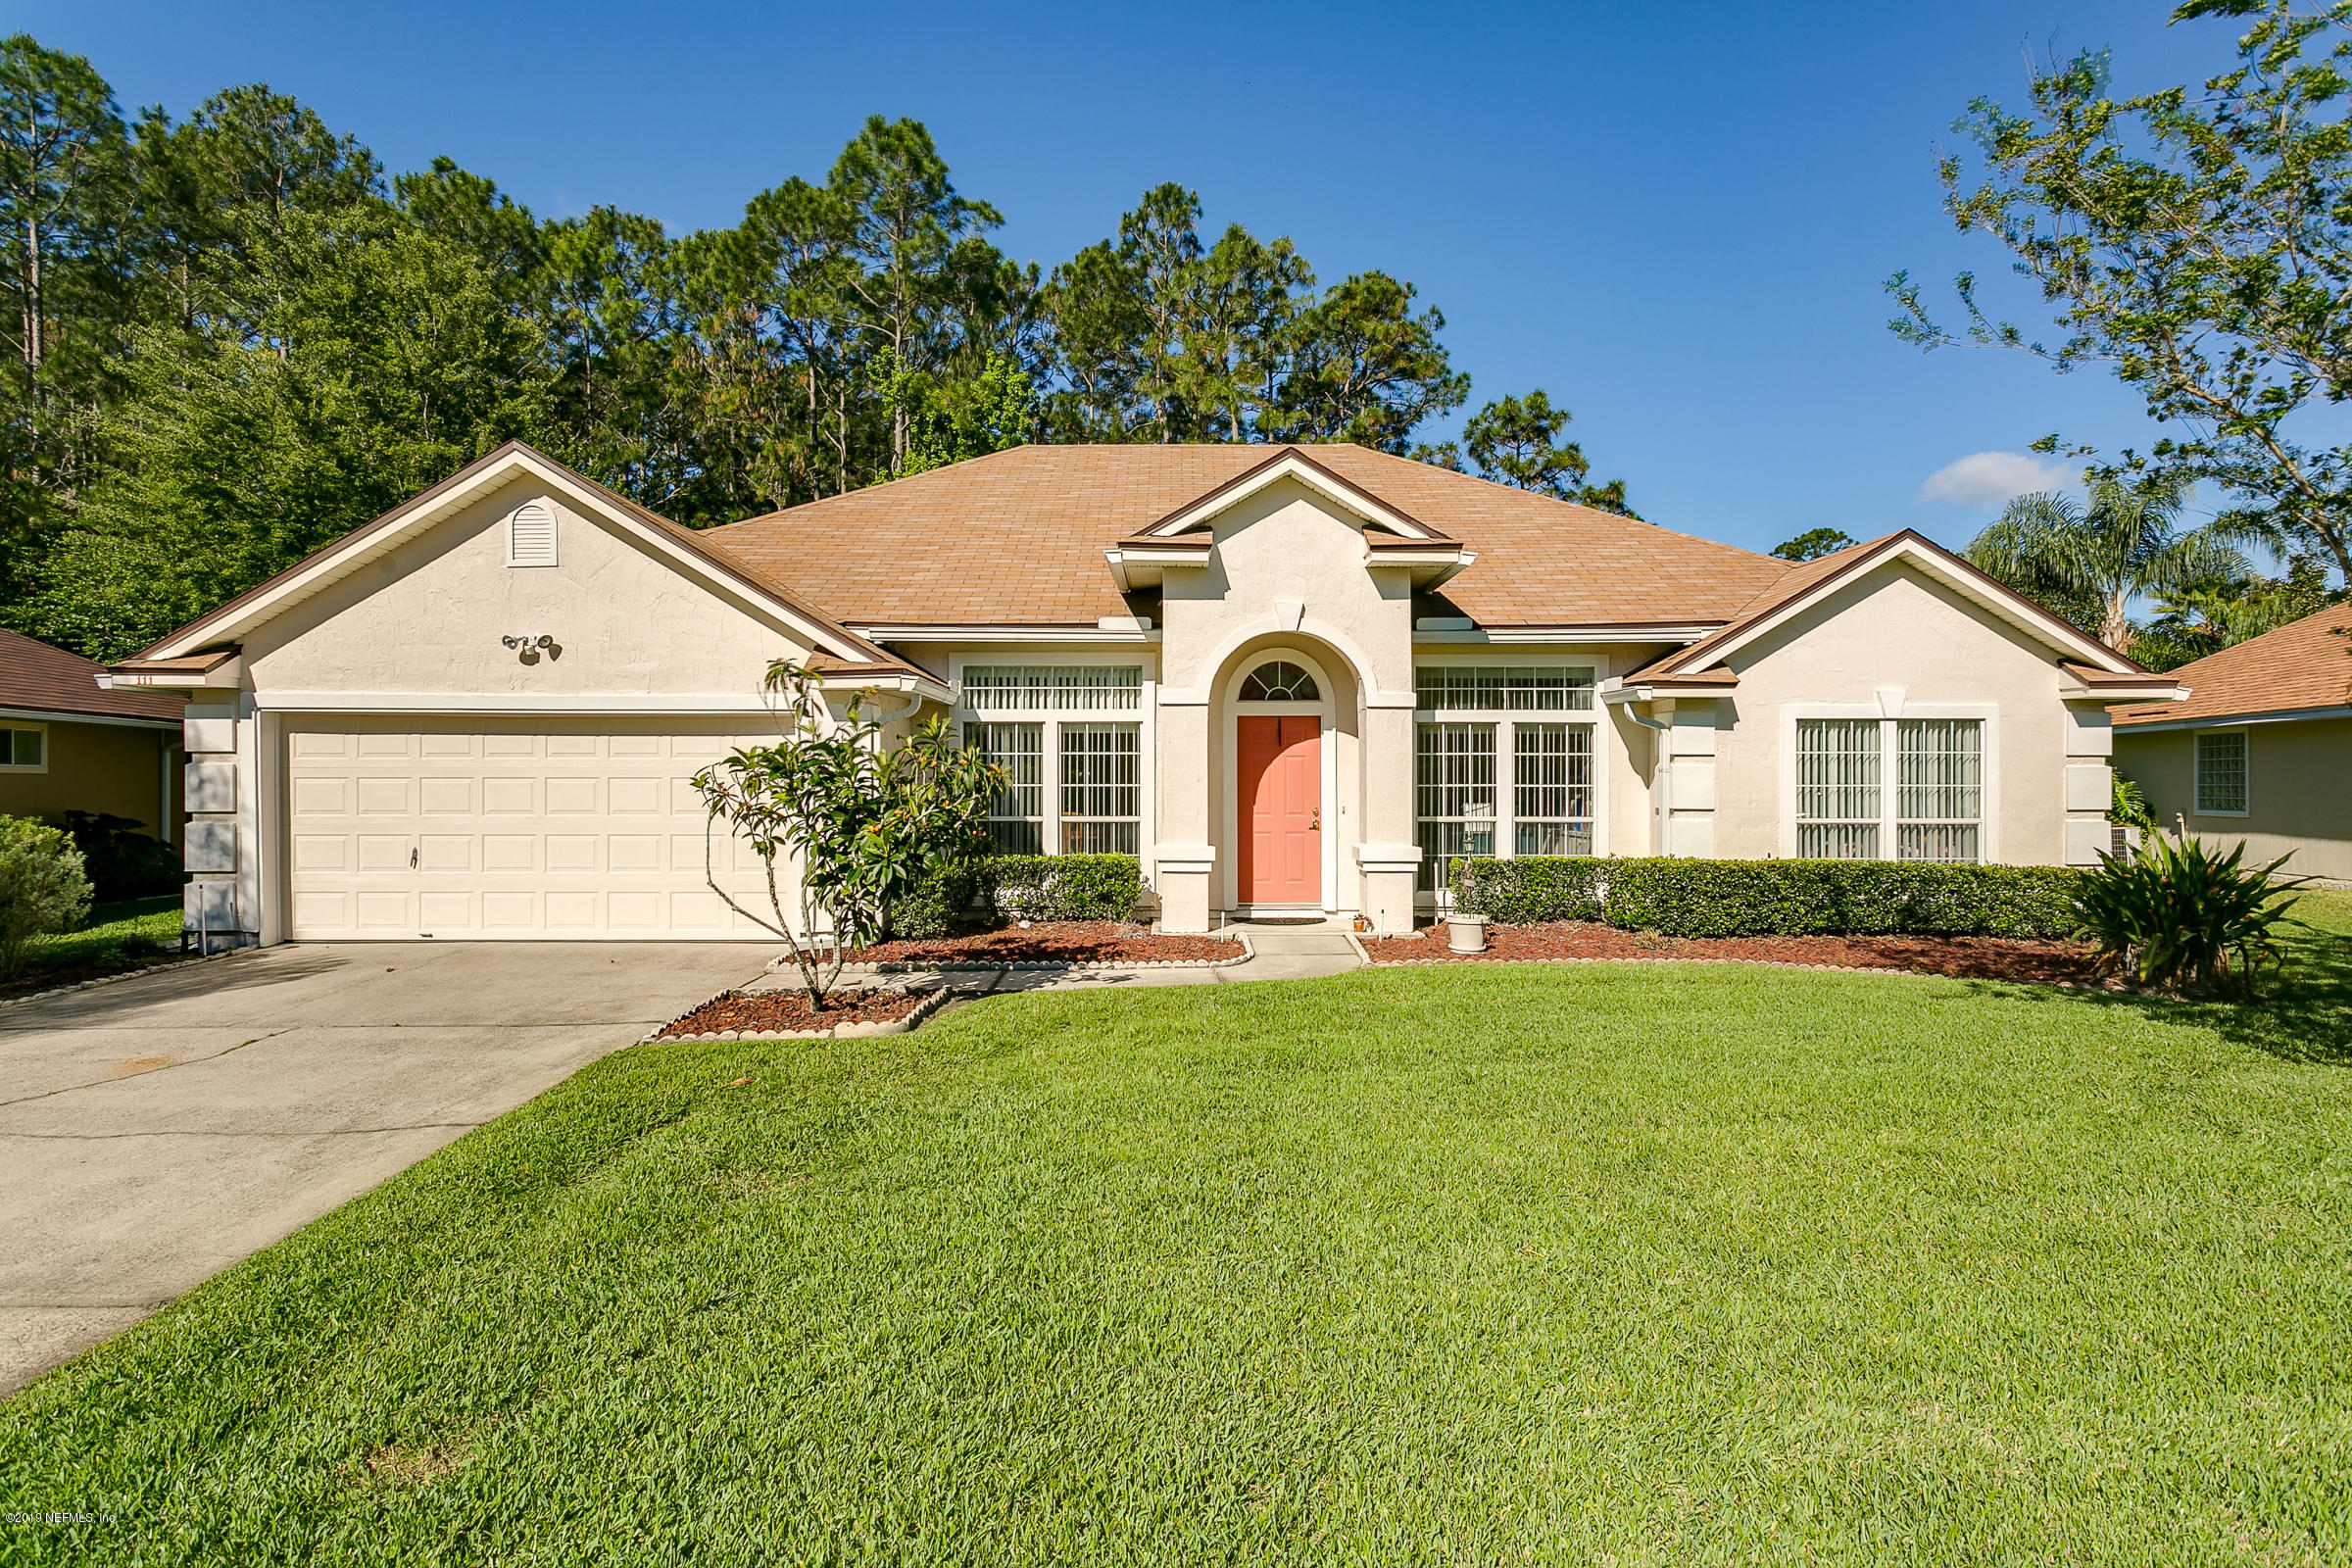 111  ELMWOOD DR, Saint Johns in ST. JOHNS County, FL 32259 Home for Sale